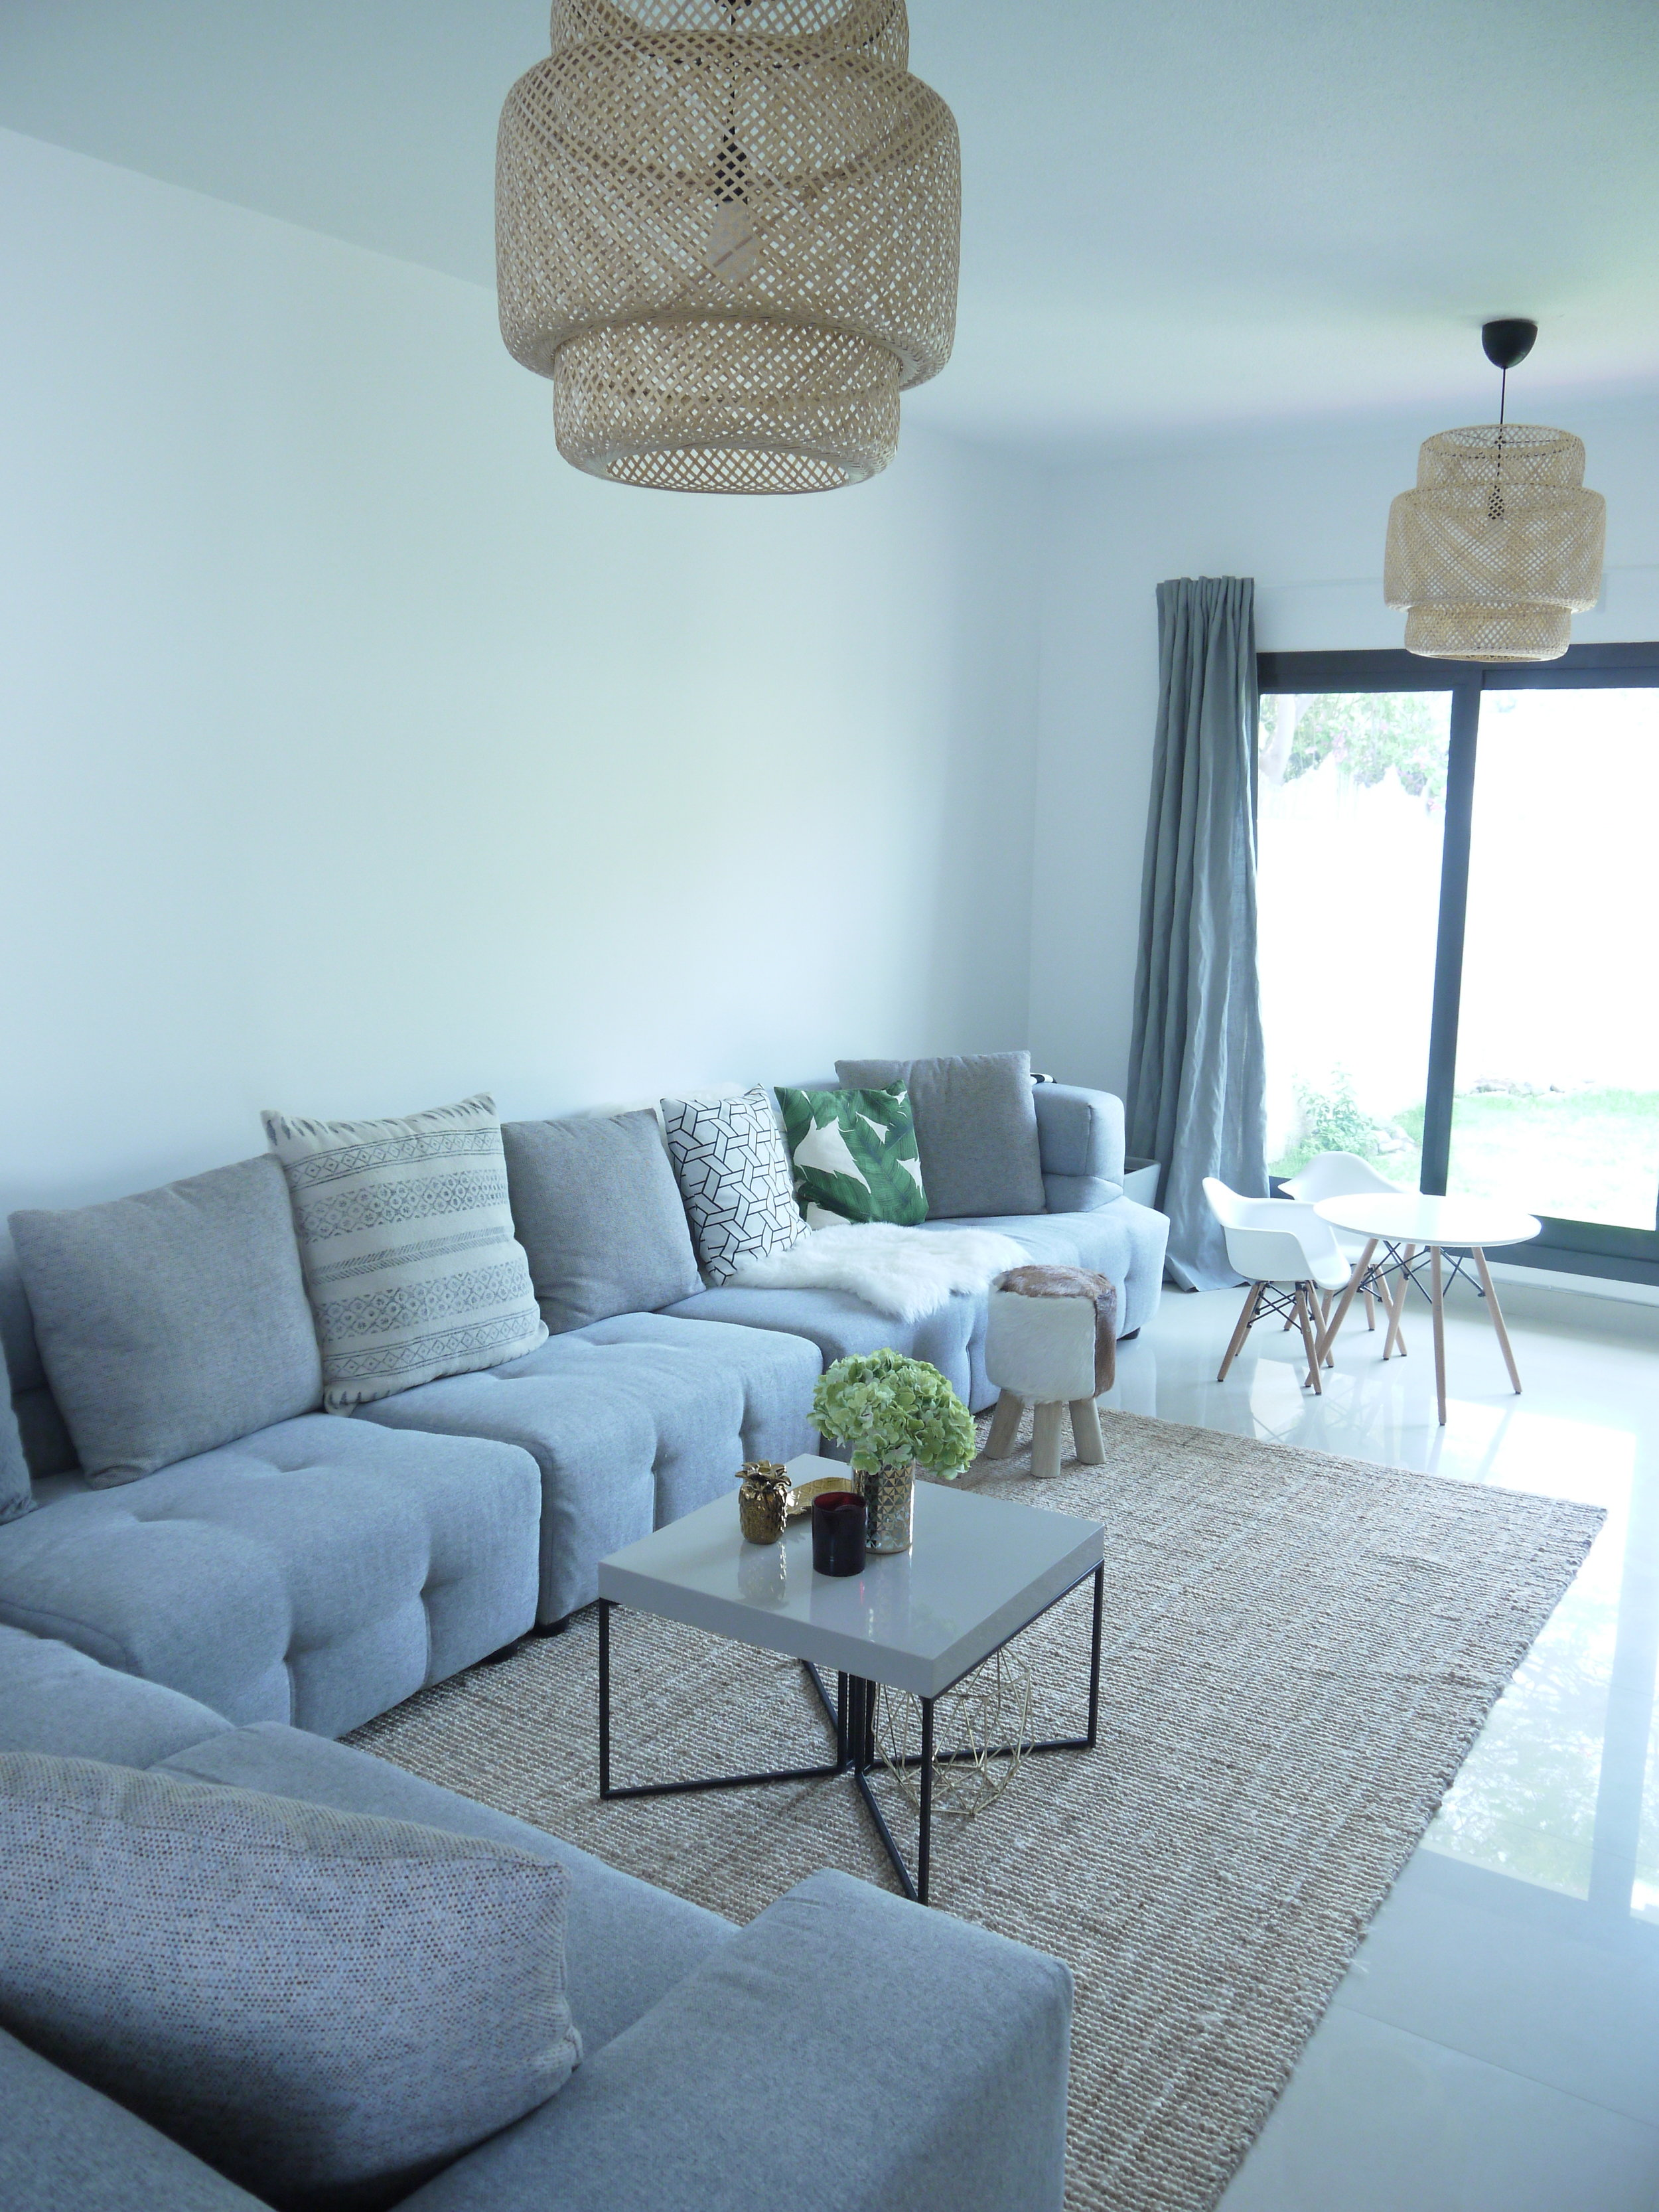 Our new pad in the desert, all minimalist, with light grey hues and soft tones, and a neutral colour palette.